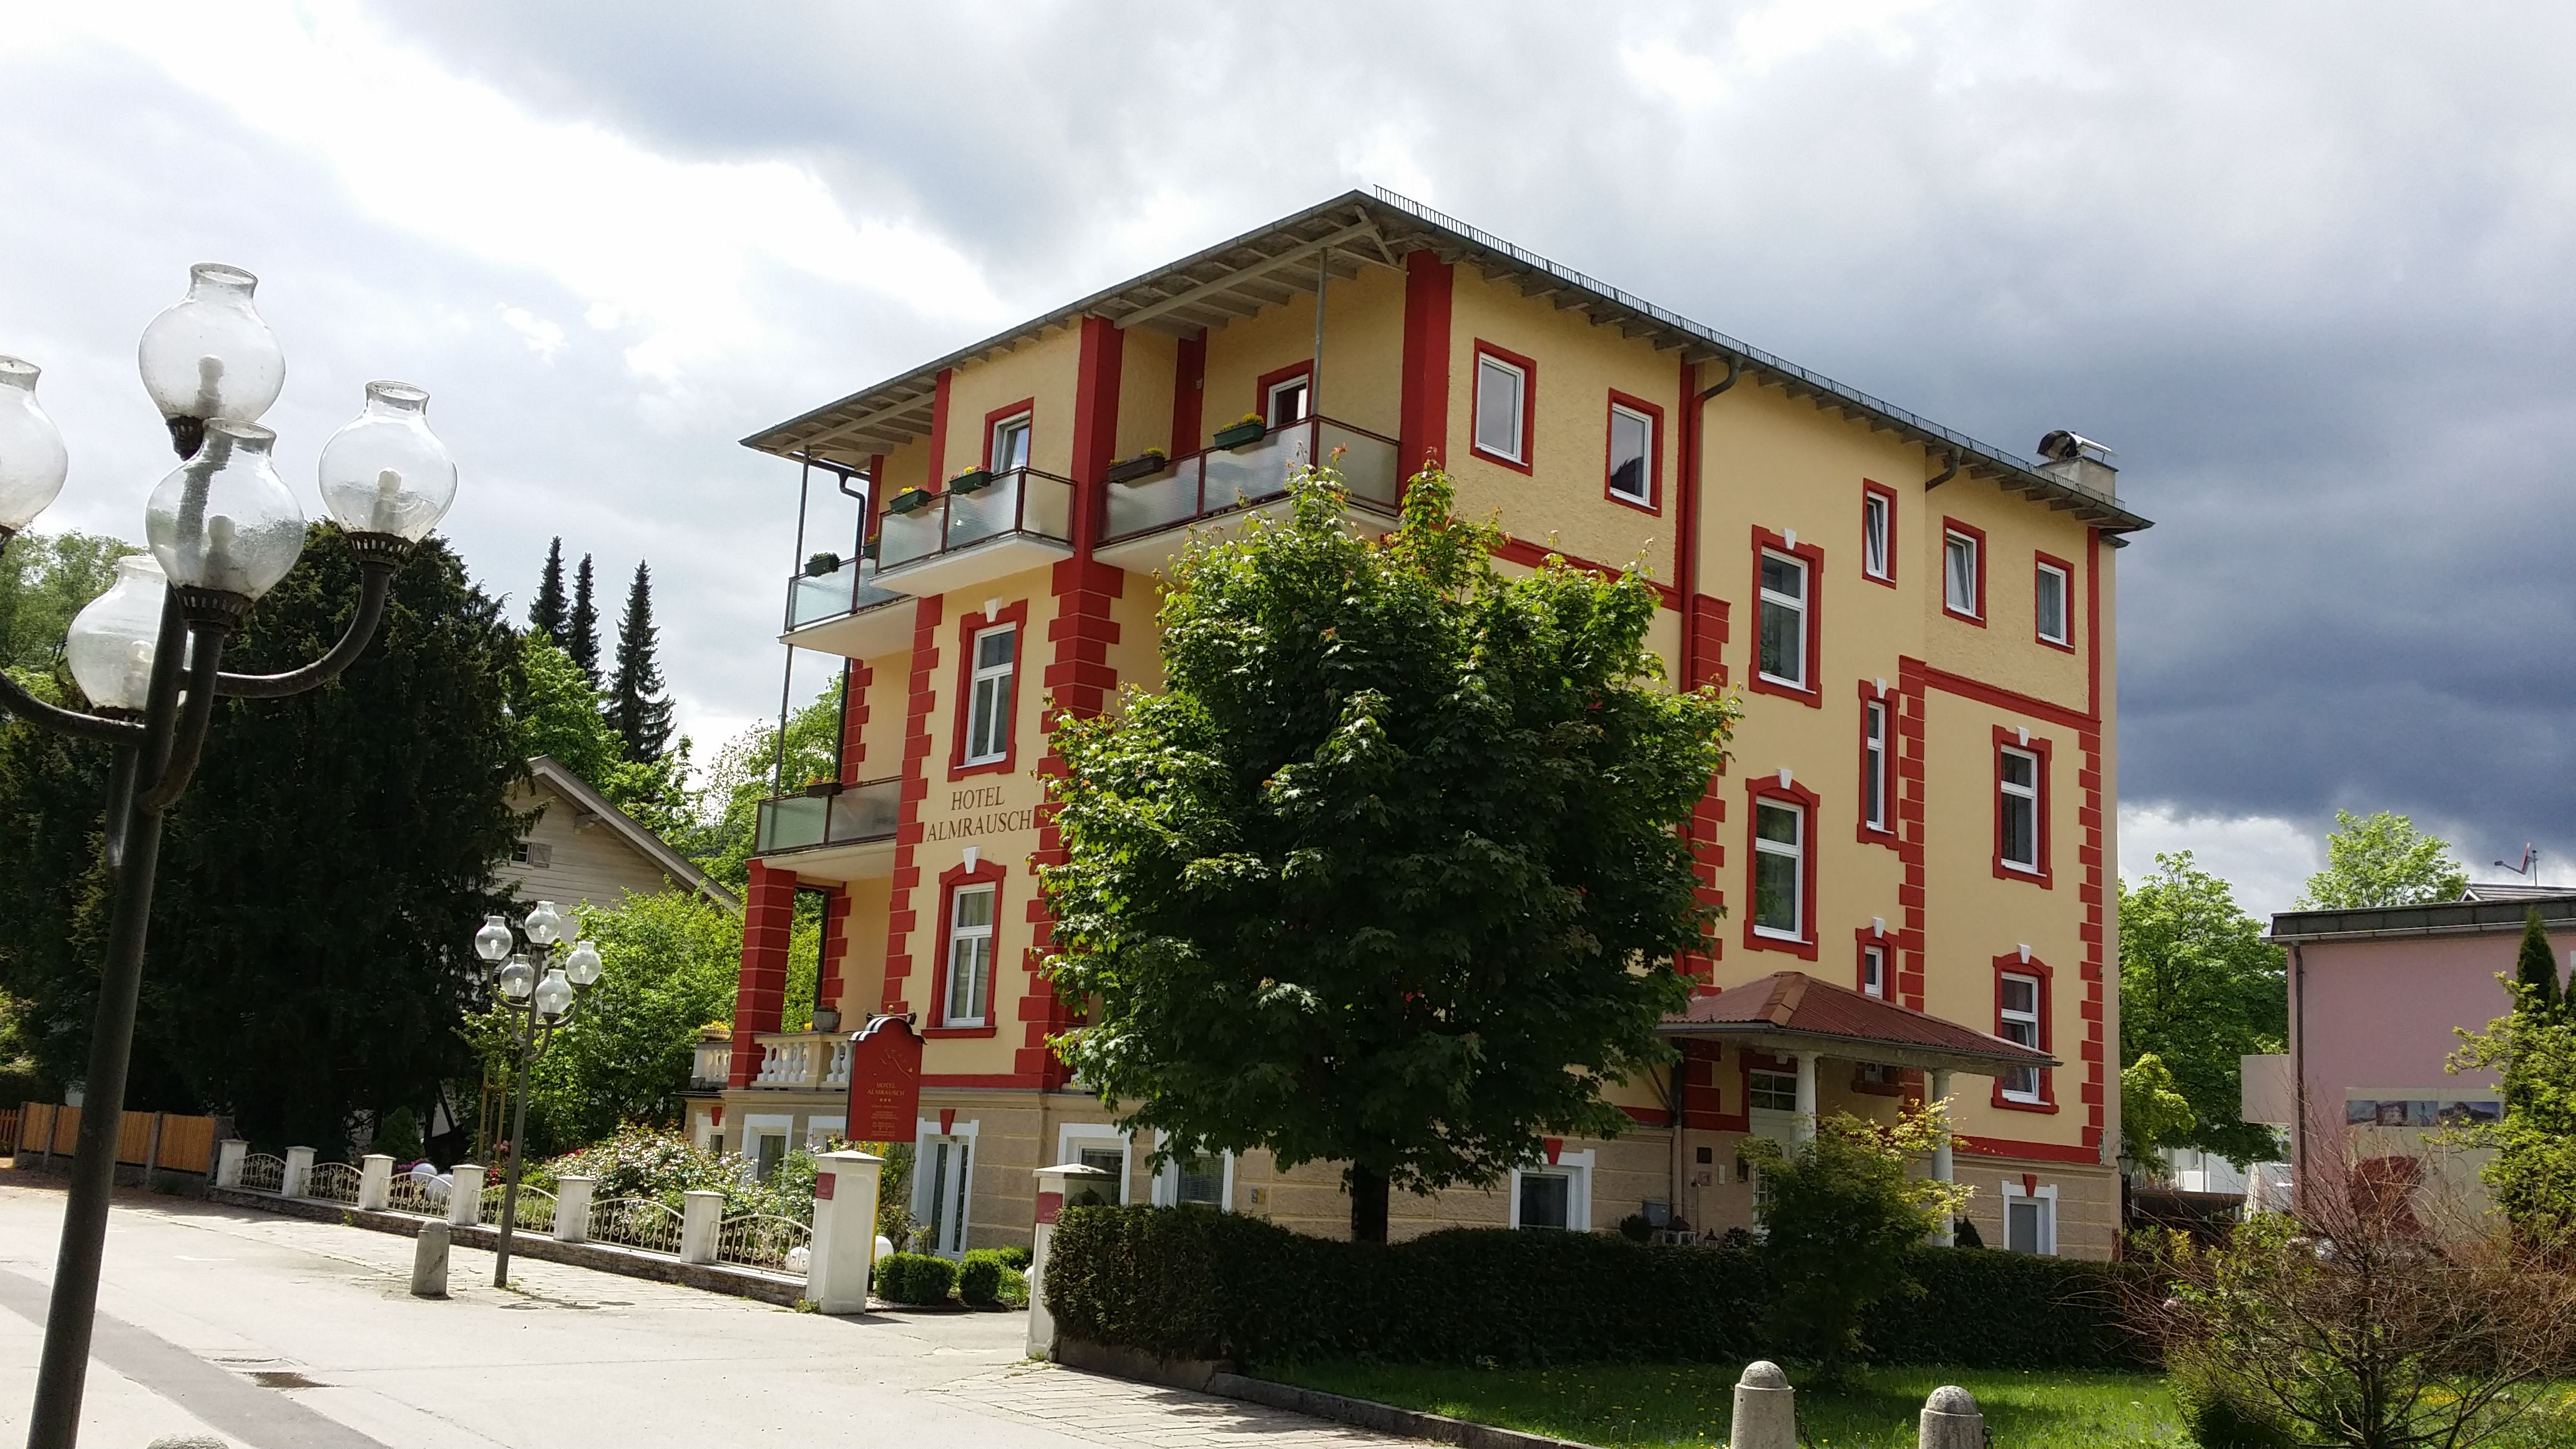 Modernes Hotel Bad Reichenhall Hotels In Bad Reichenhall Visit The Healthy Heart Of The Alps